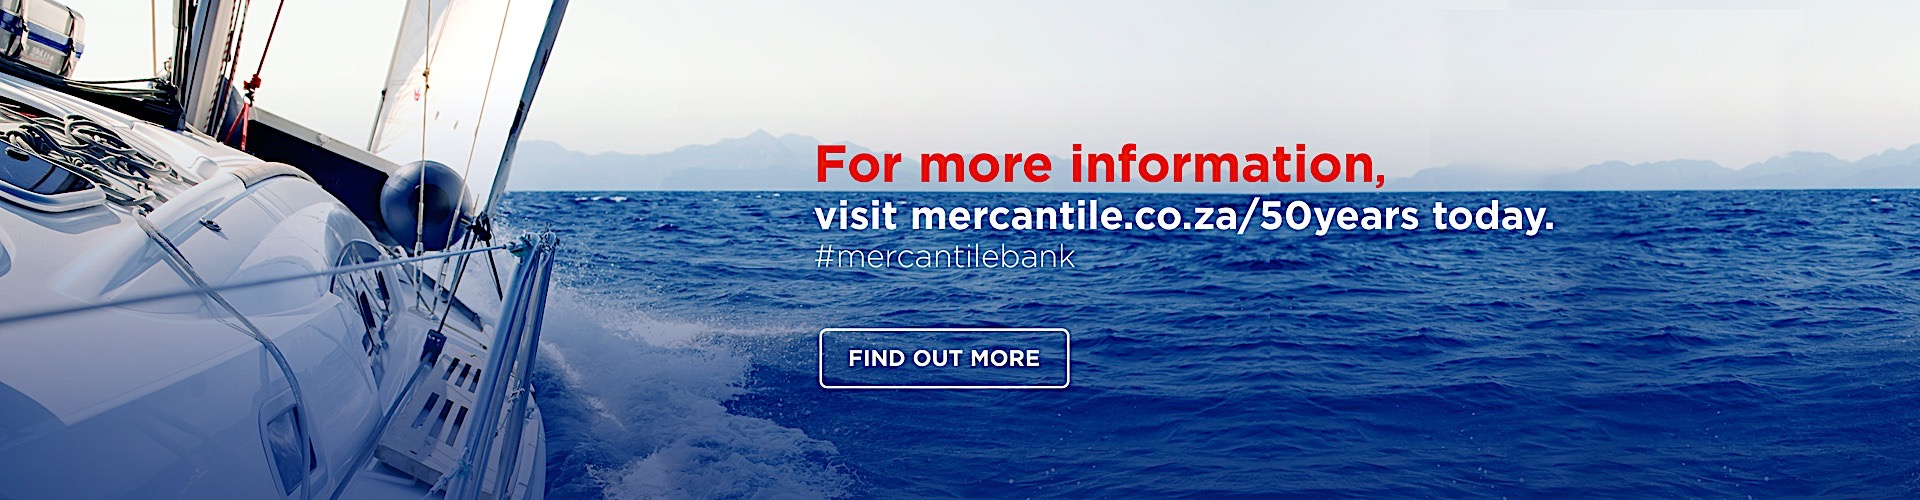 Welcome To Mercantile Bank